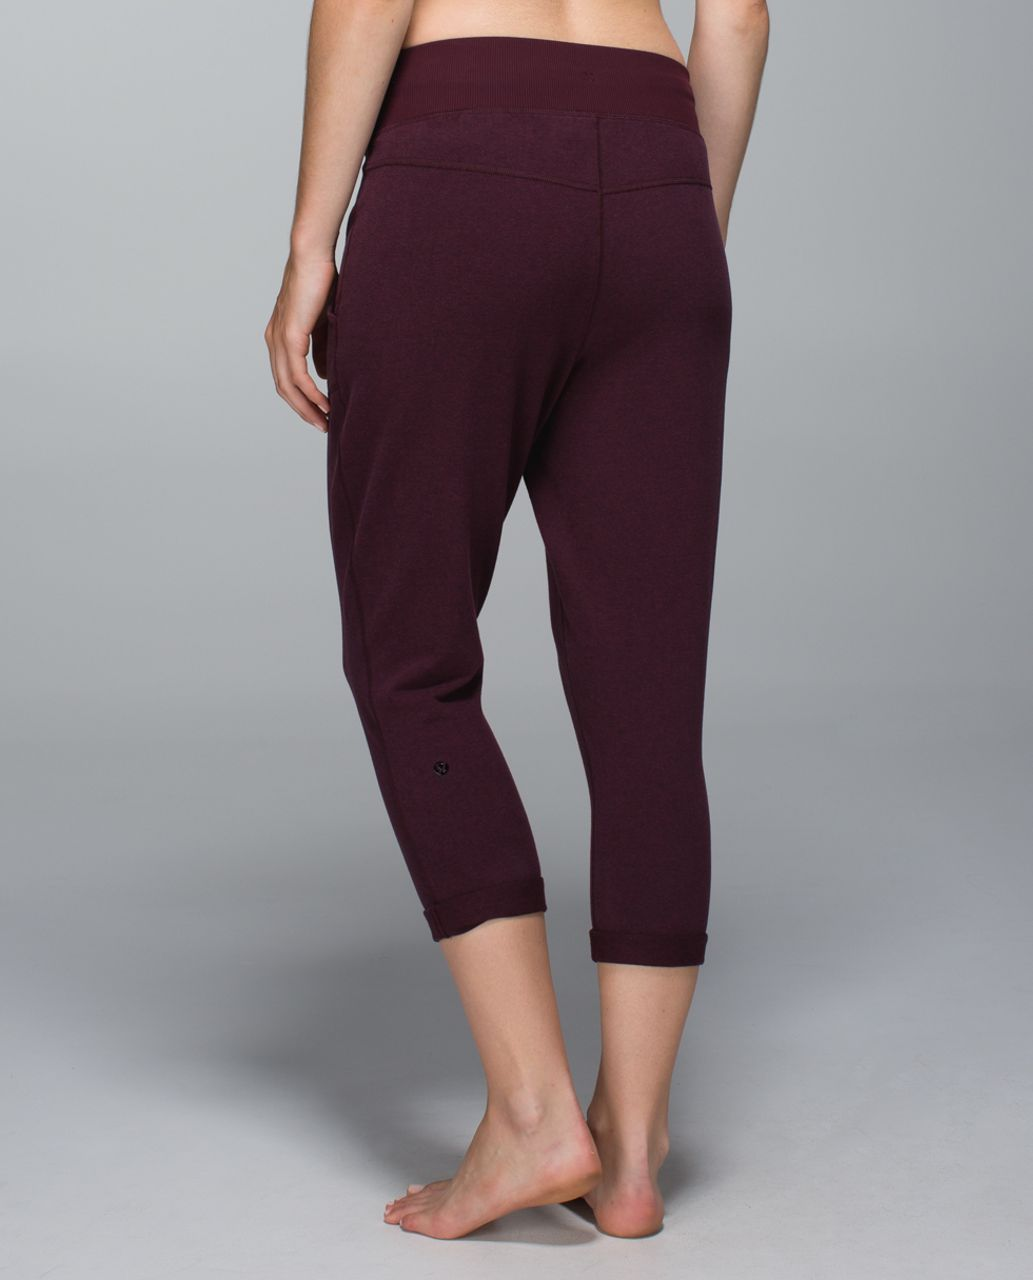 fdb6ead16e Lululemon Free Fall Crop - Heathered Bordeaux Drama - lulu fanatics